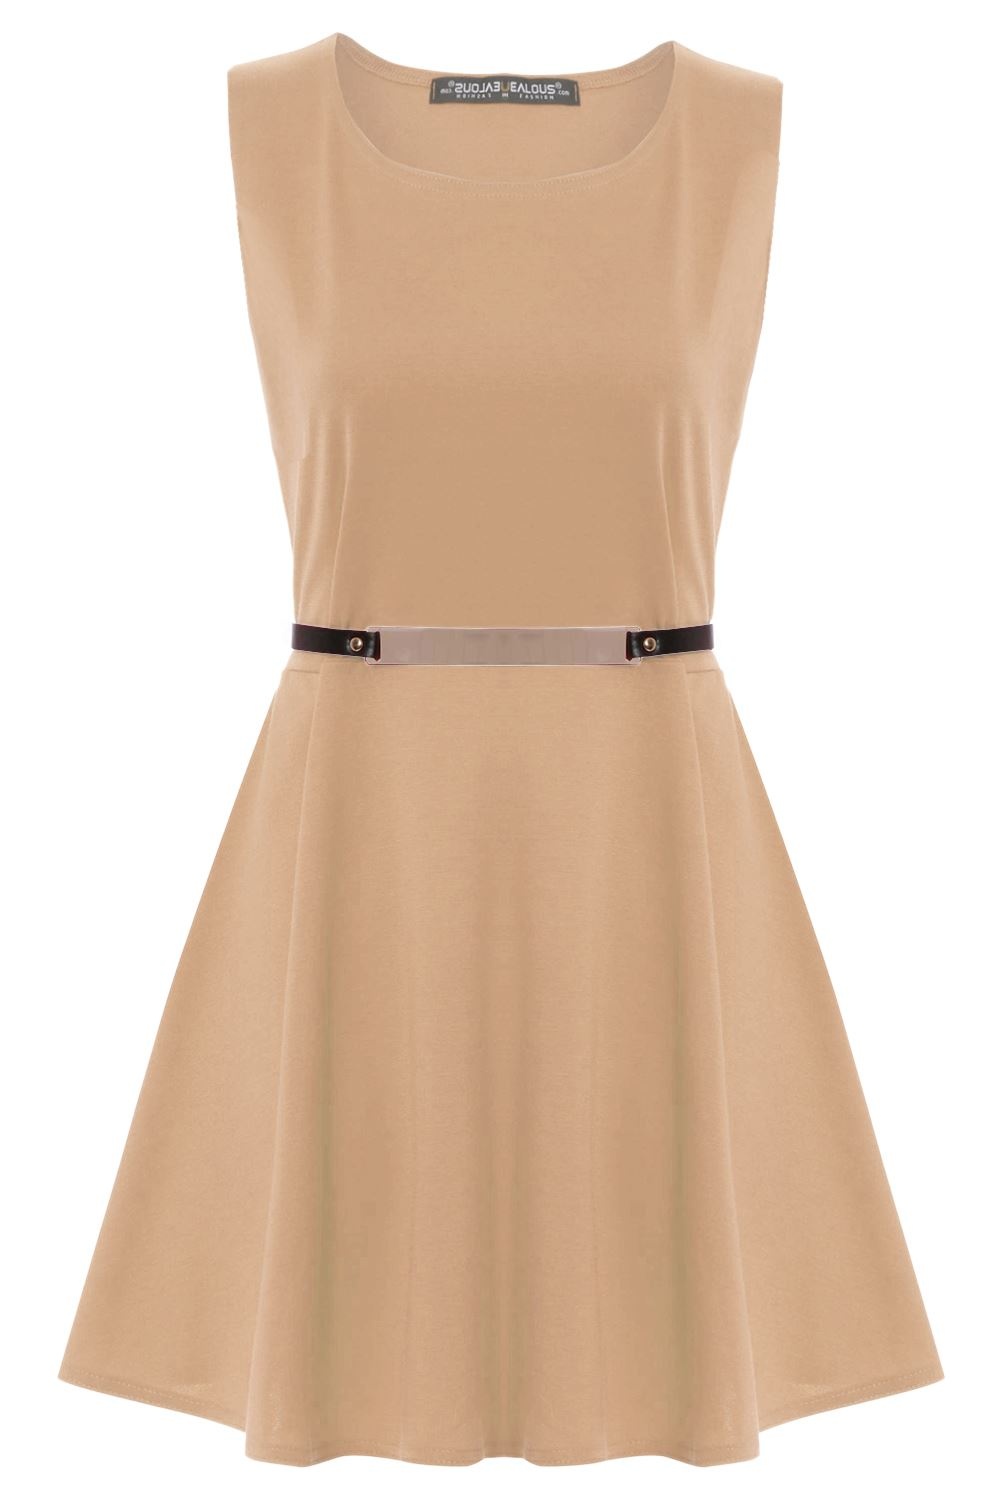 Womens-Ladies-Sleeveless-Party-Skater-Dress-Flared-Franki-Gold-Belted-Plus-Size